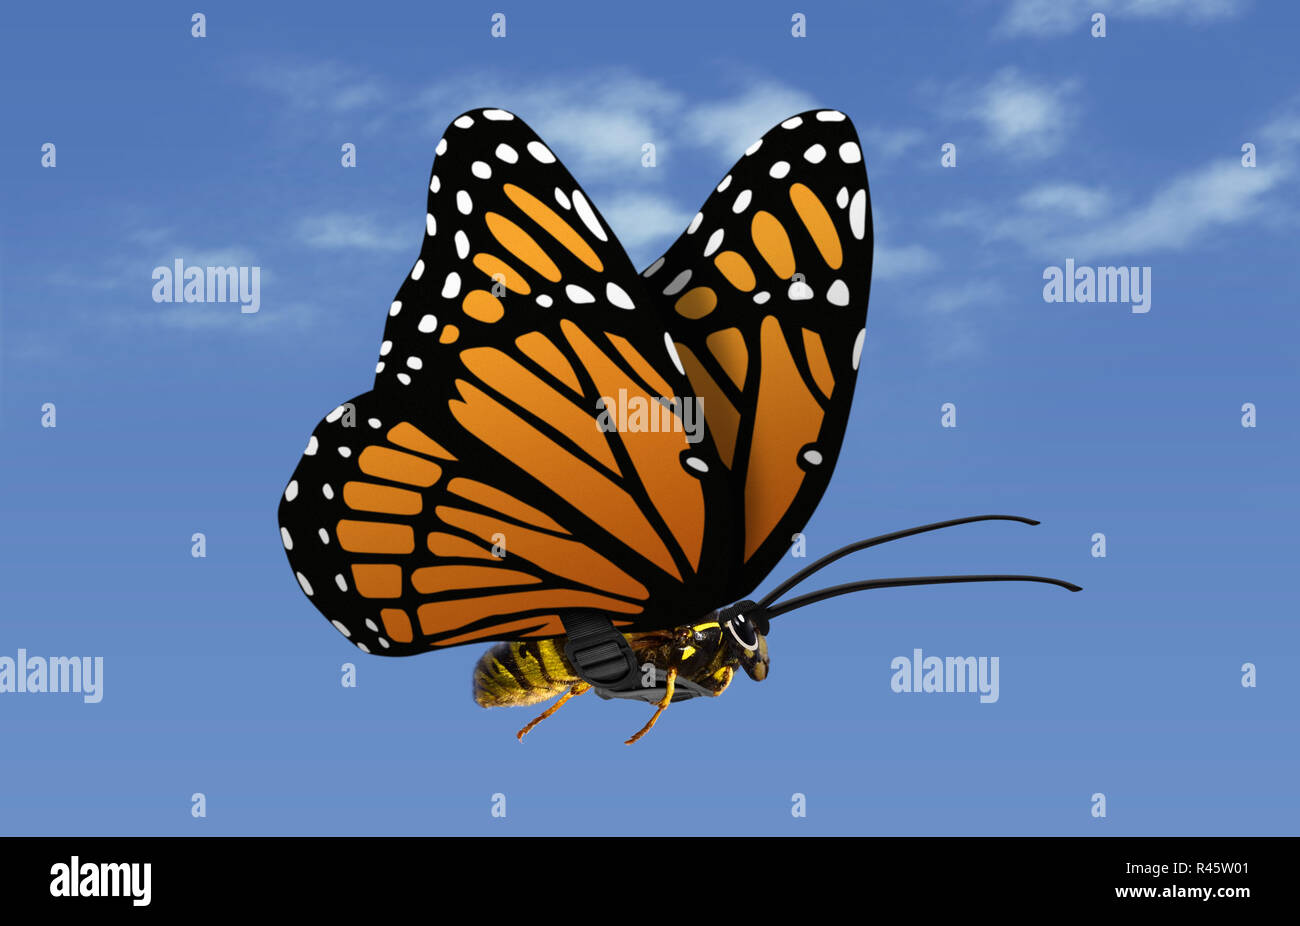 evil wasp disguised as a harmless butterfly - Stock Image